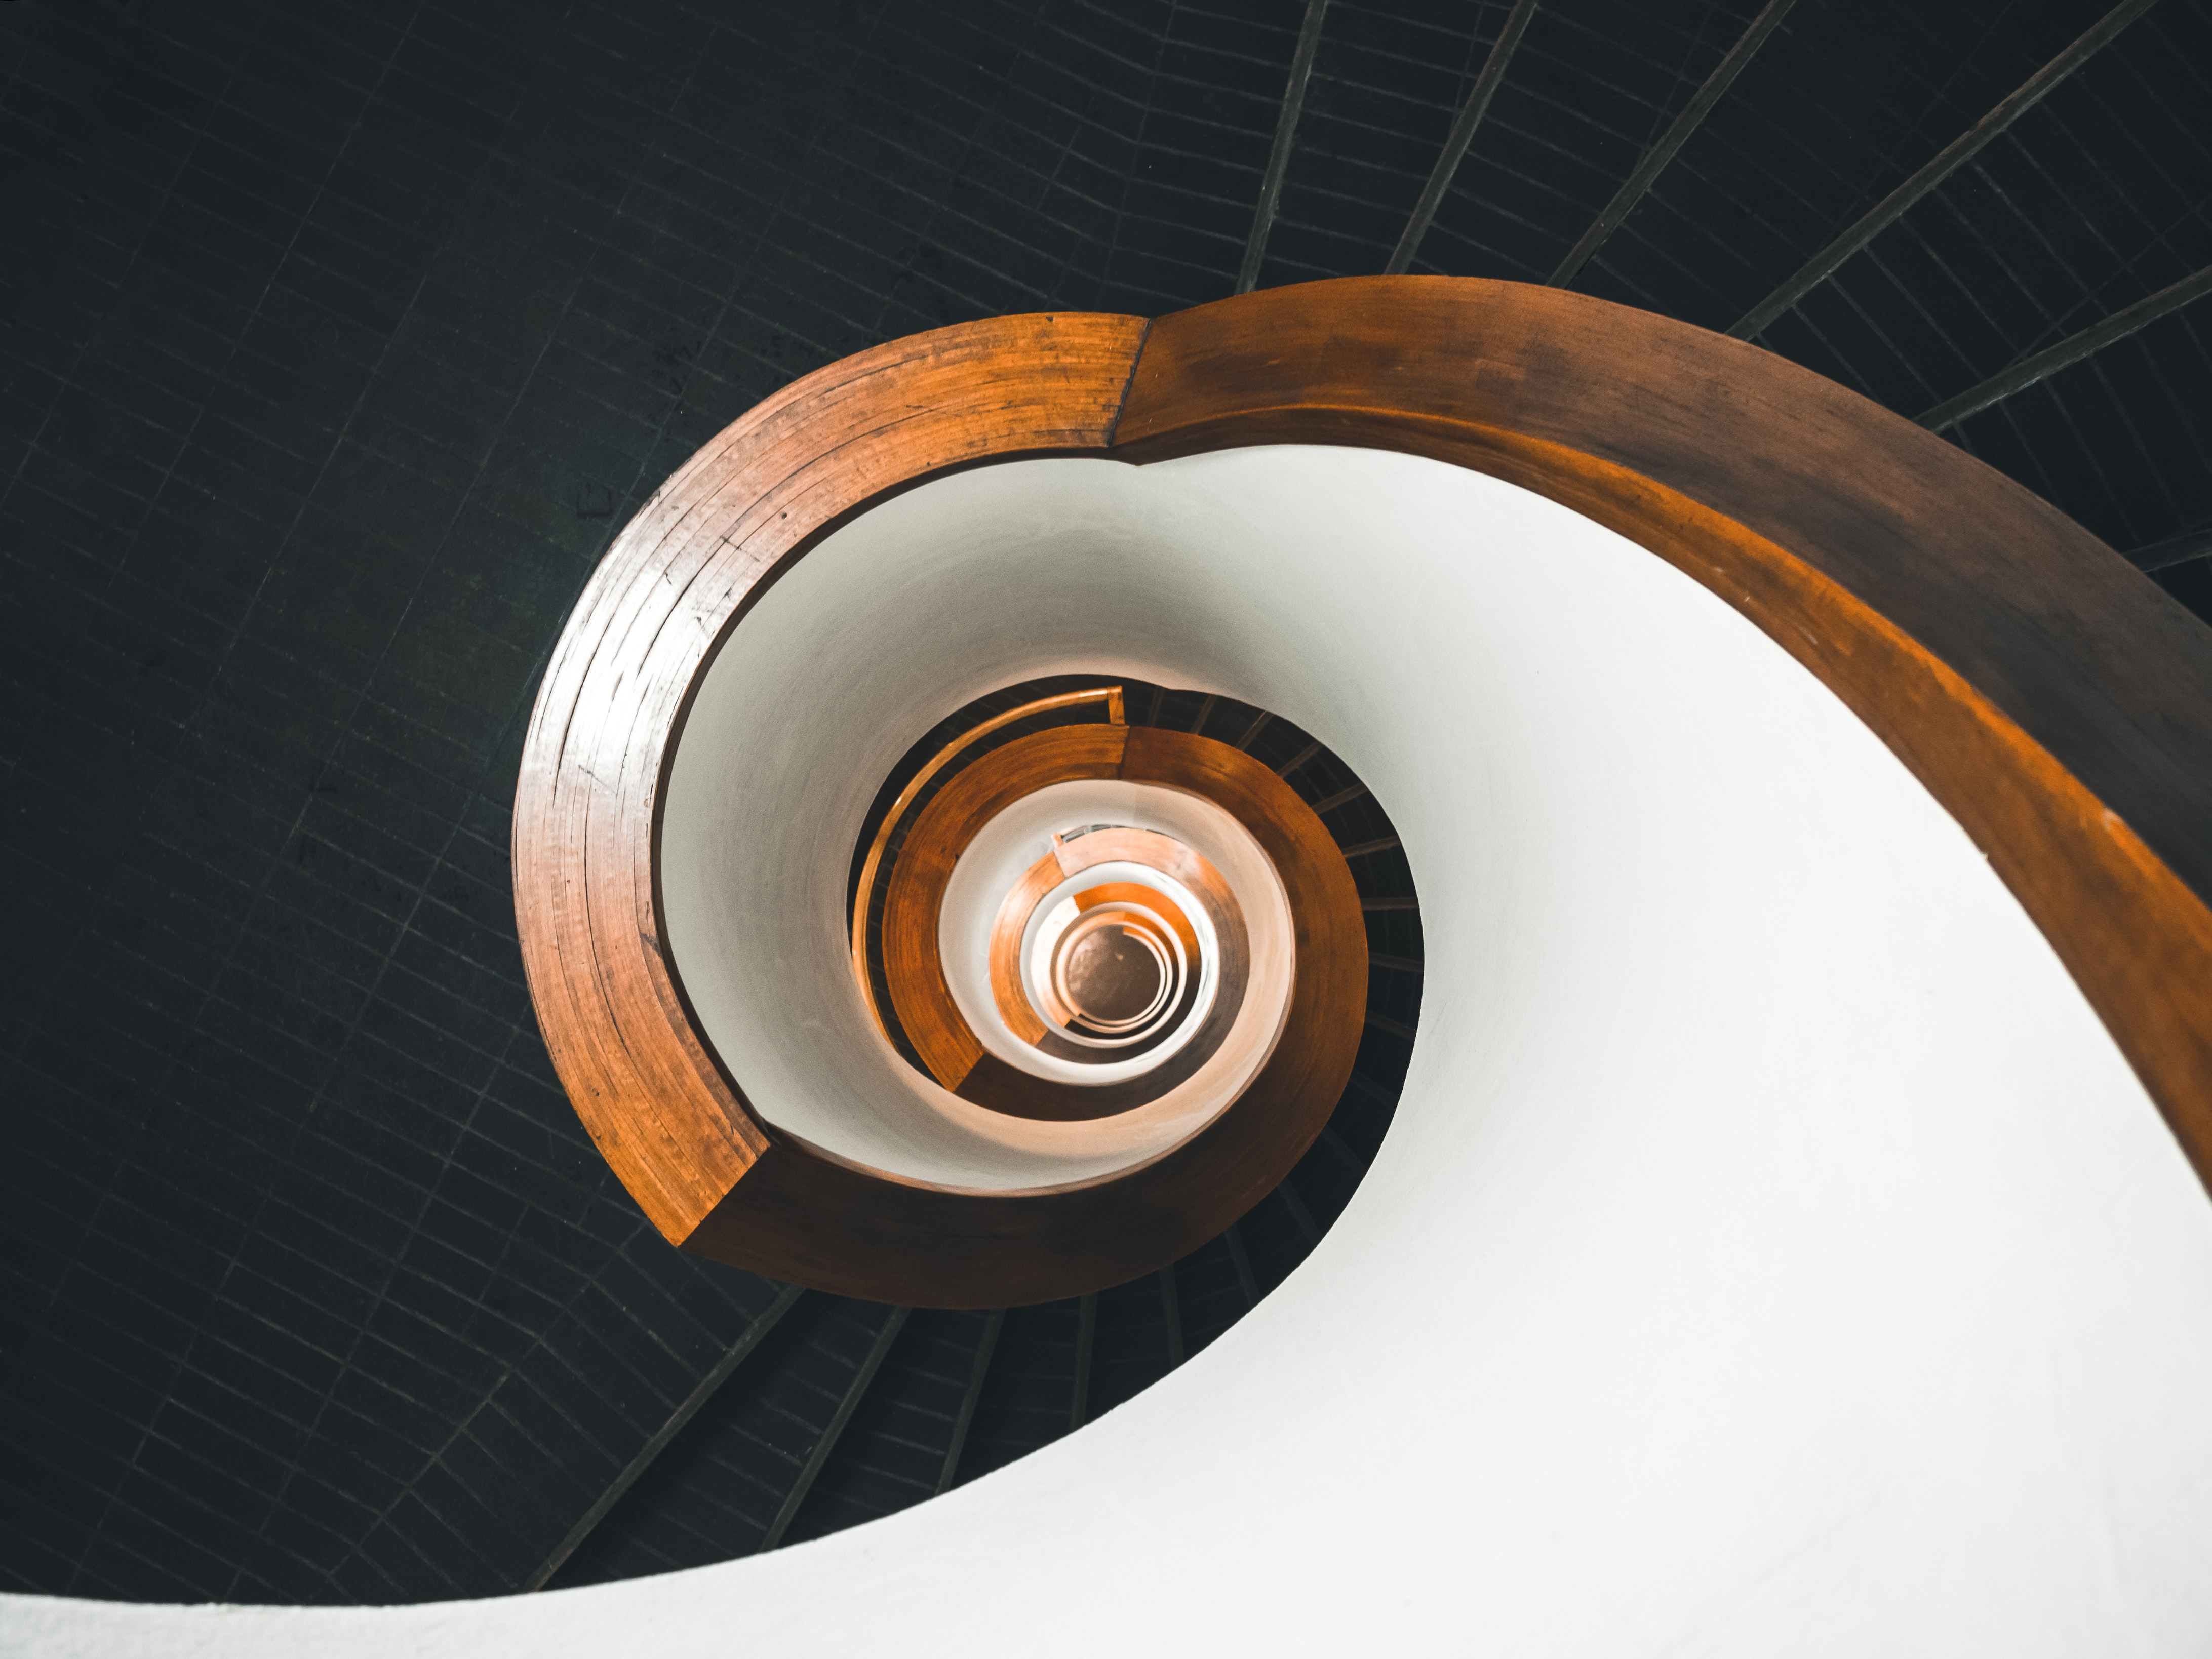 photo showing spiral staircase